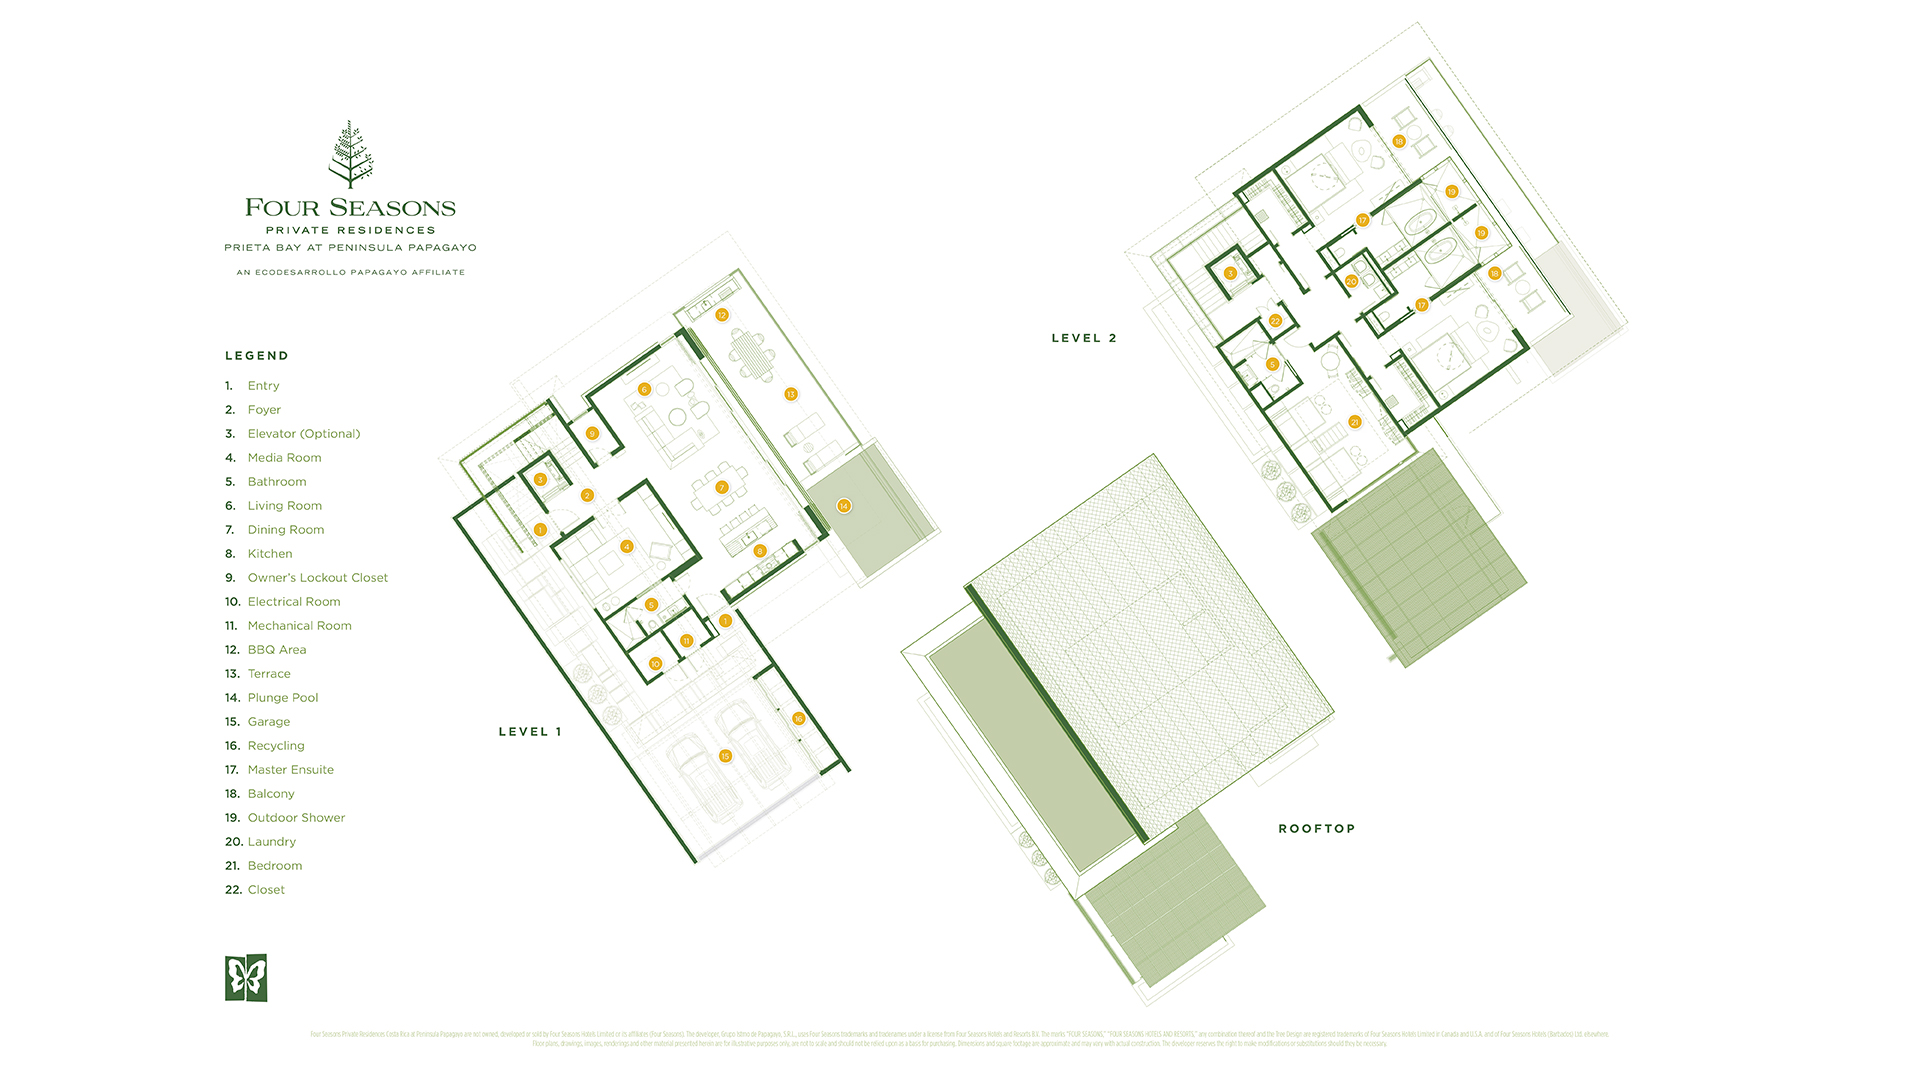 Touchtour Pv Floor Plan Peninsula Pagapayo Legend Of Electrical Leave A Reply Cancel